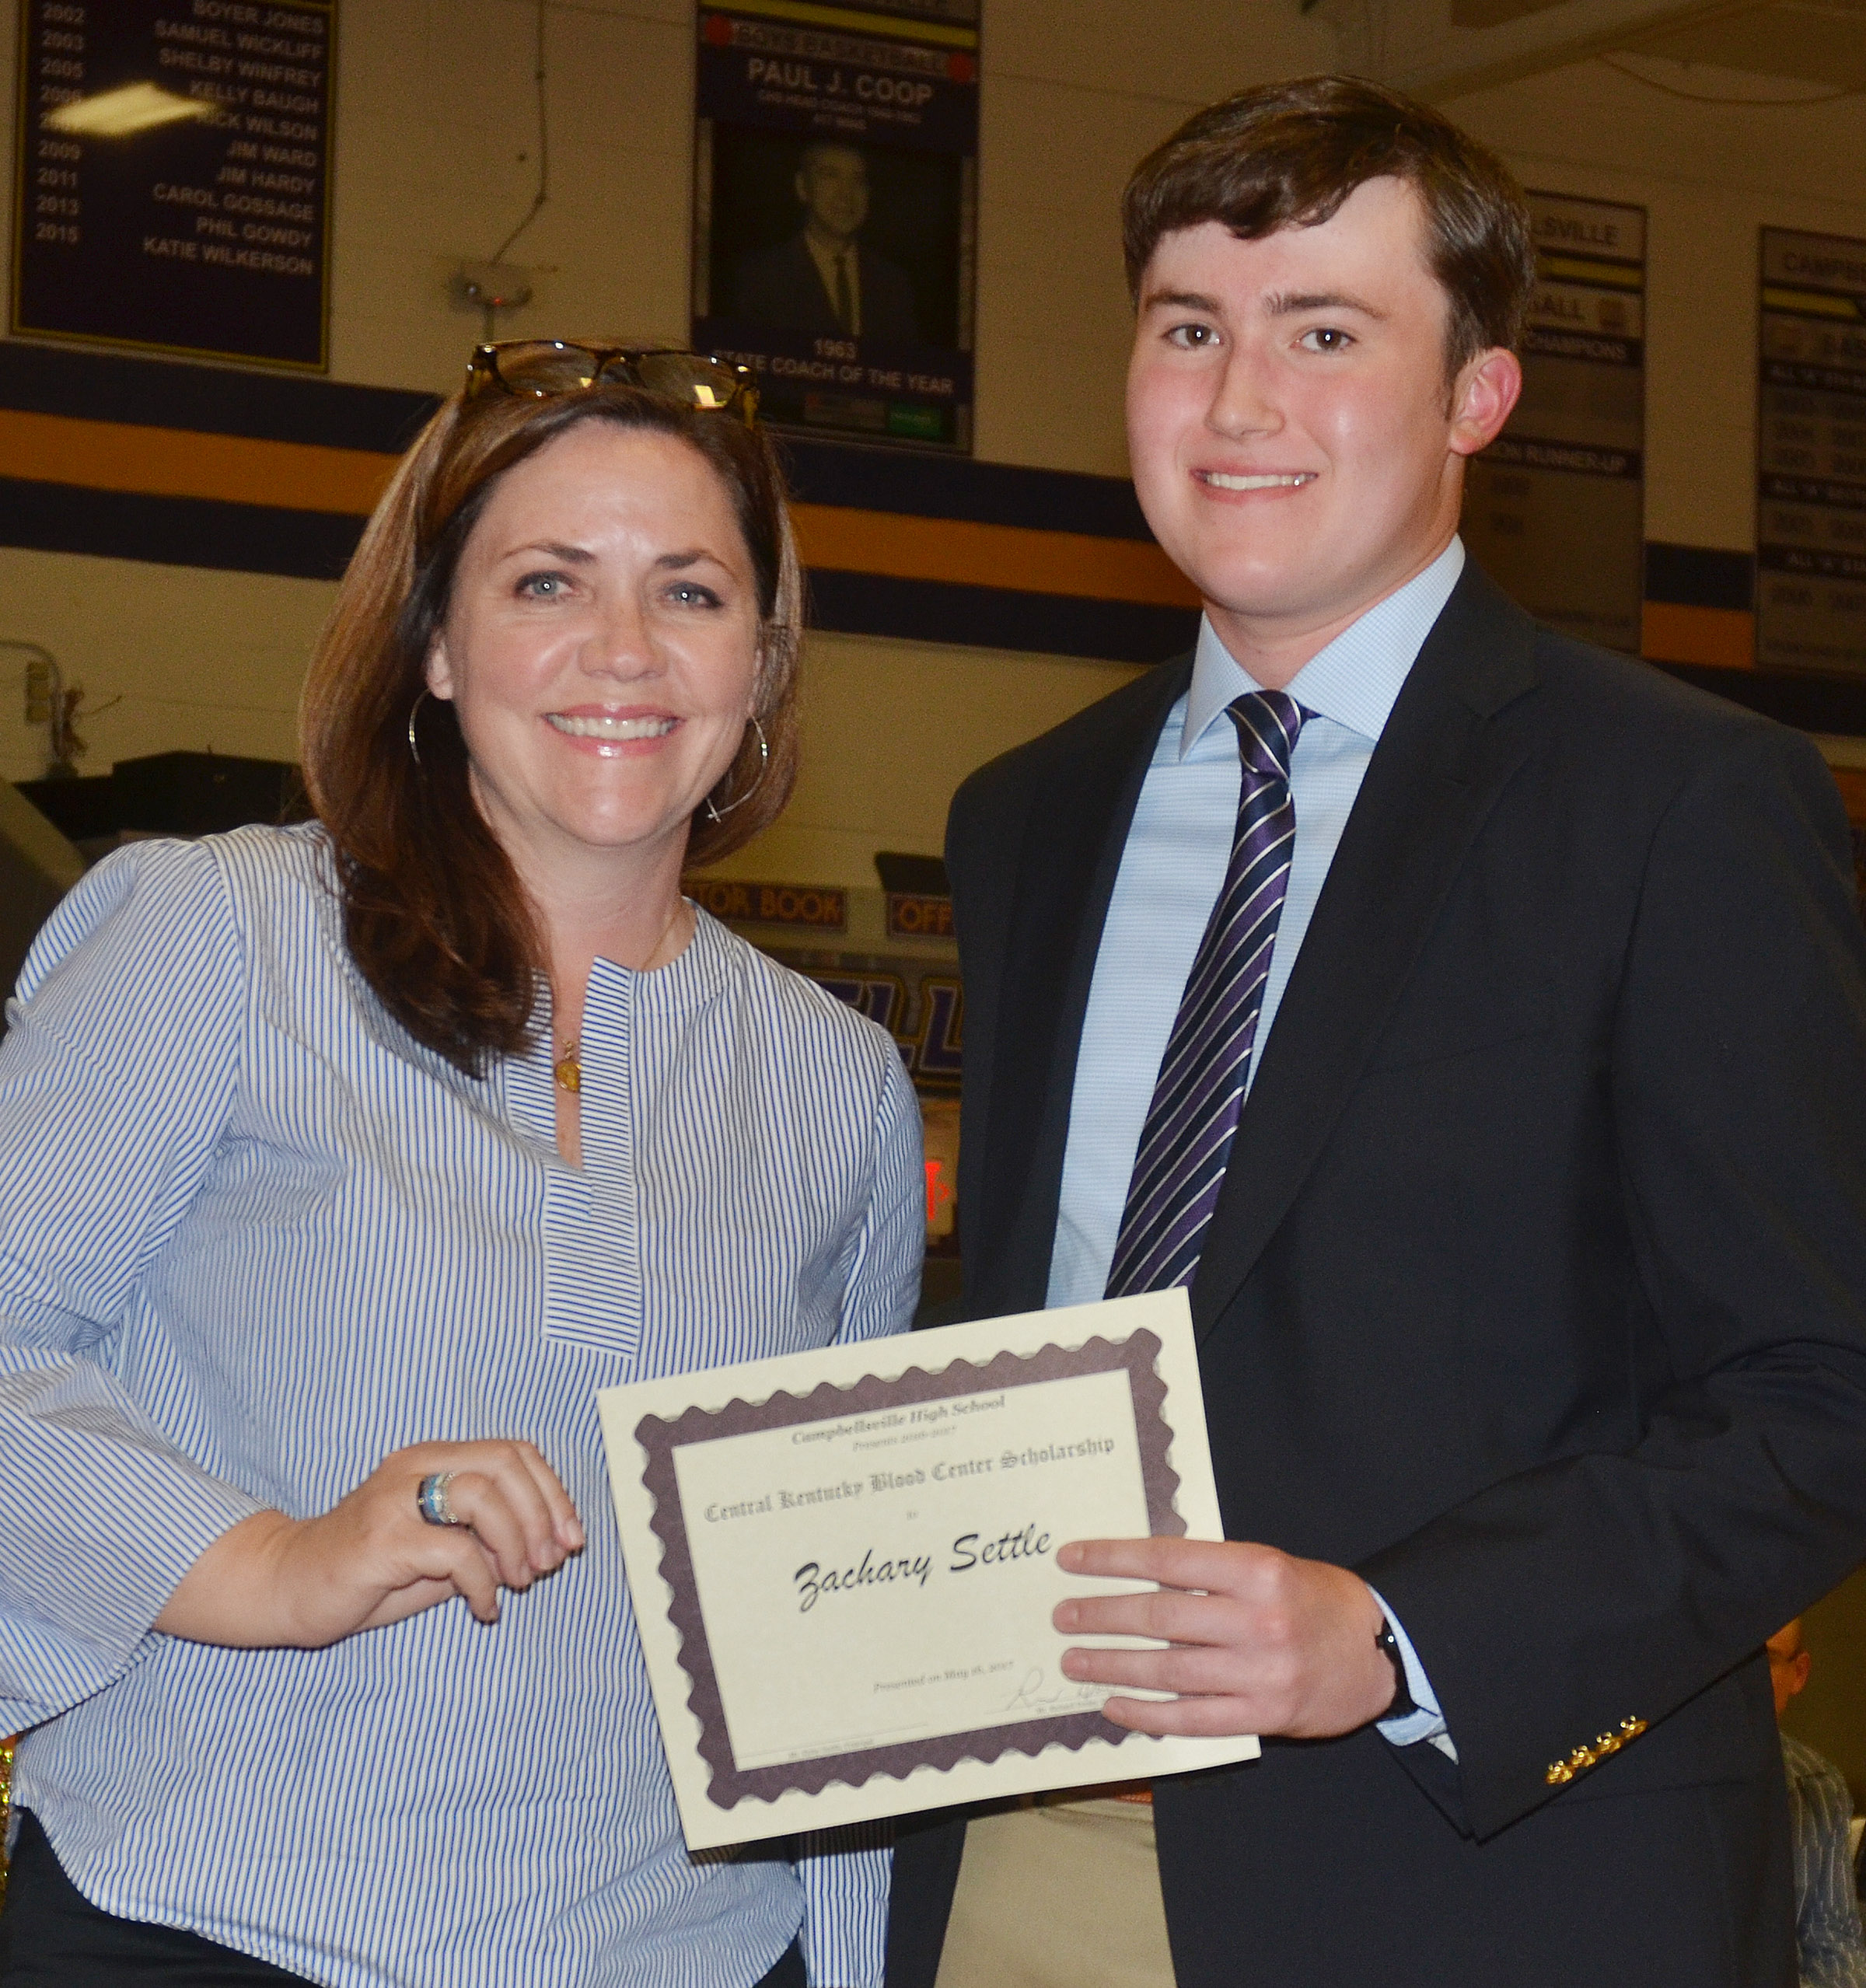 Zack Settle receives a Central Kentucky Blood Center scholarship from CHS teacher Susan Dabney.